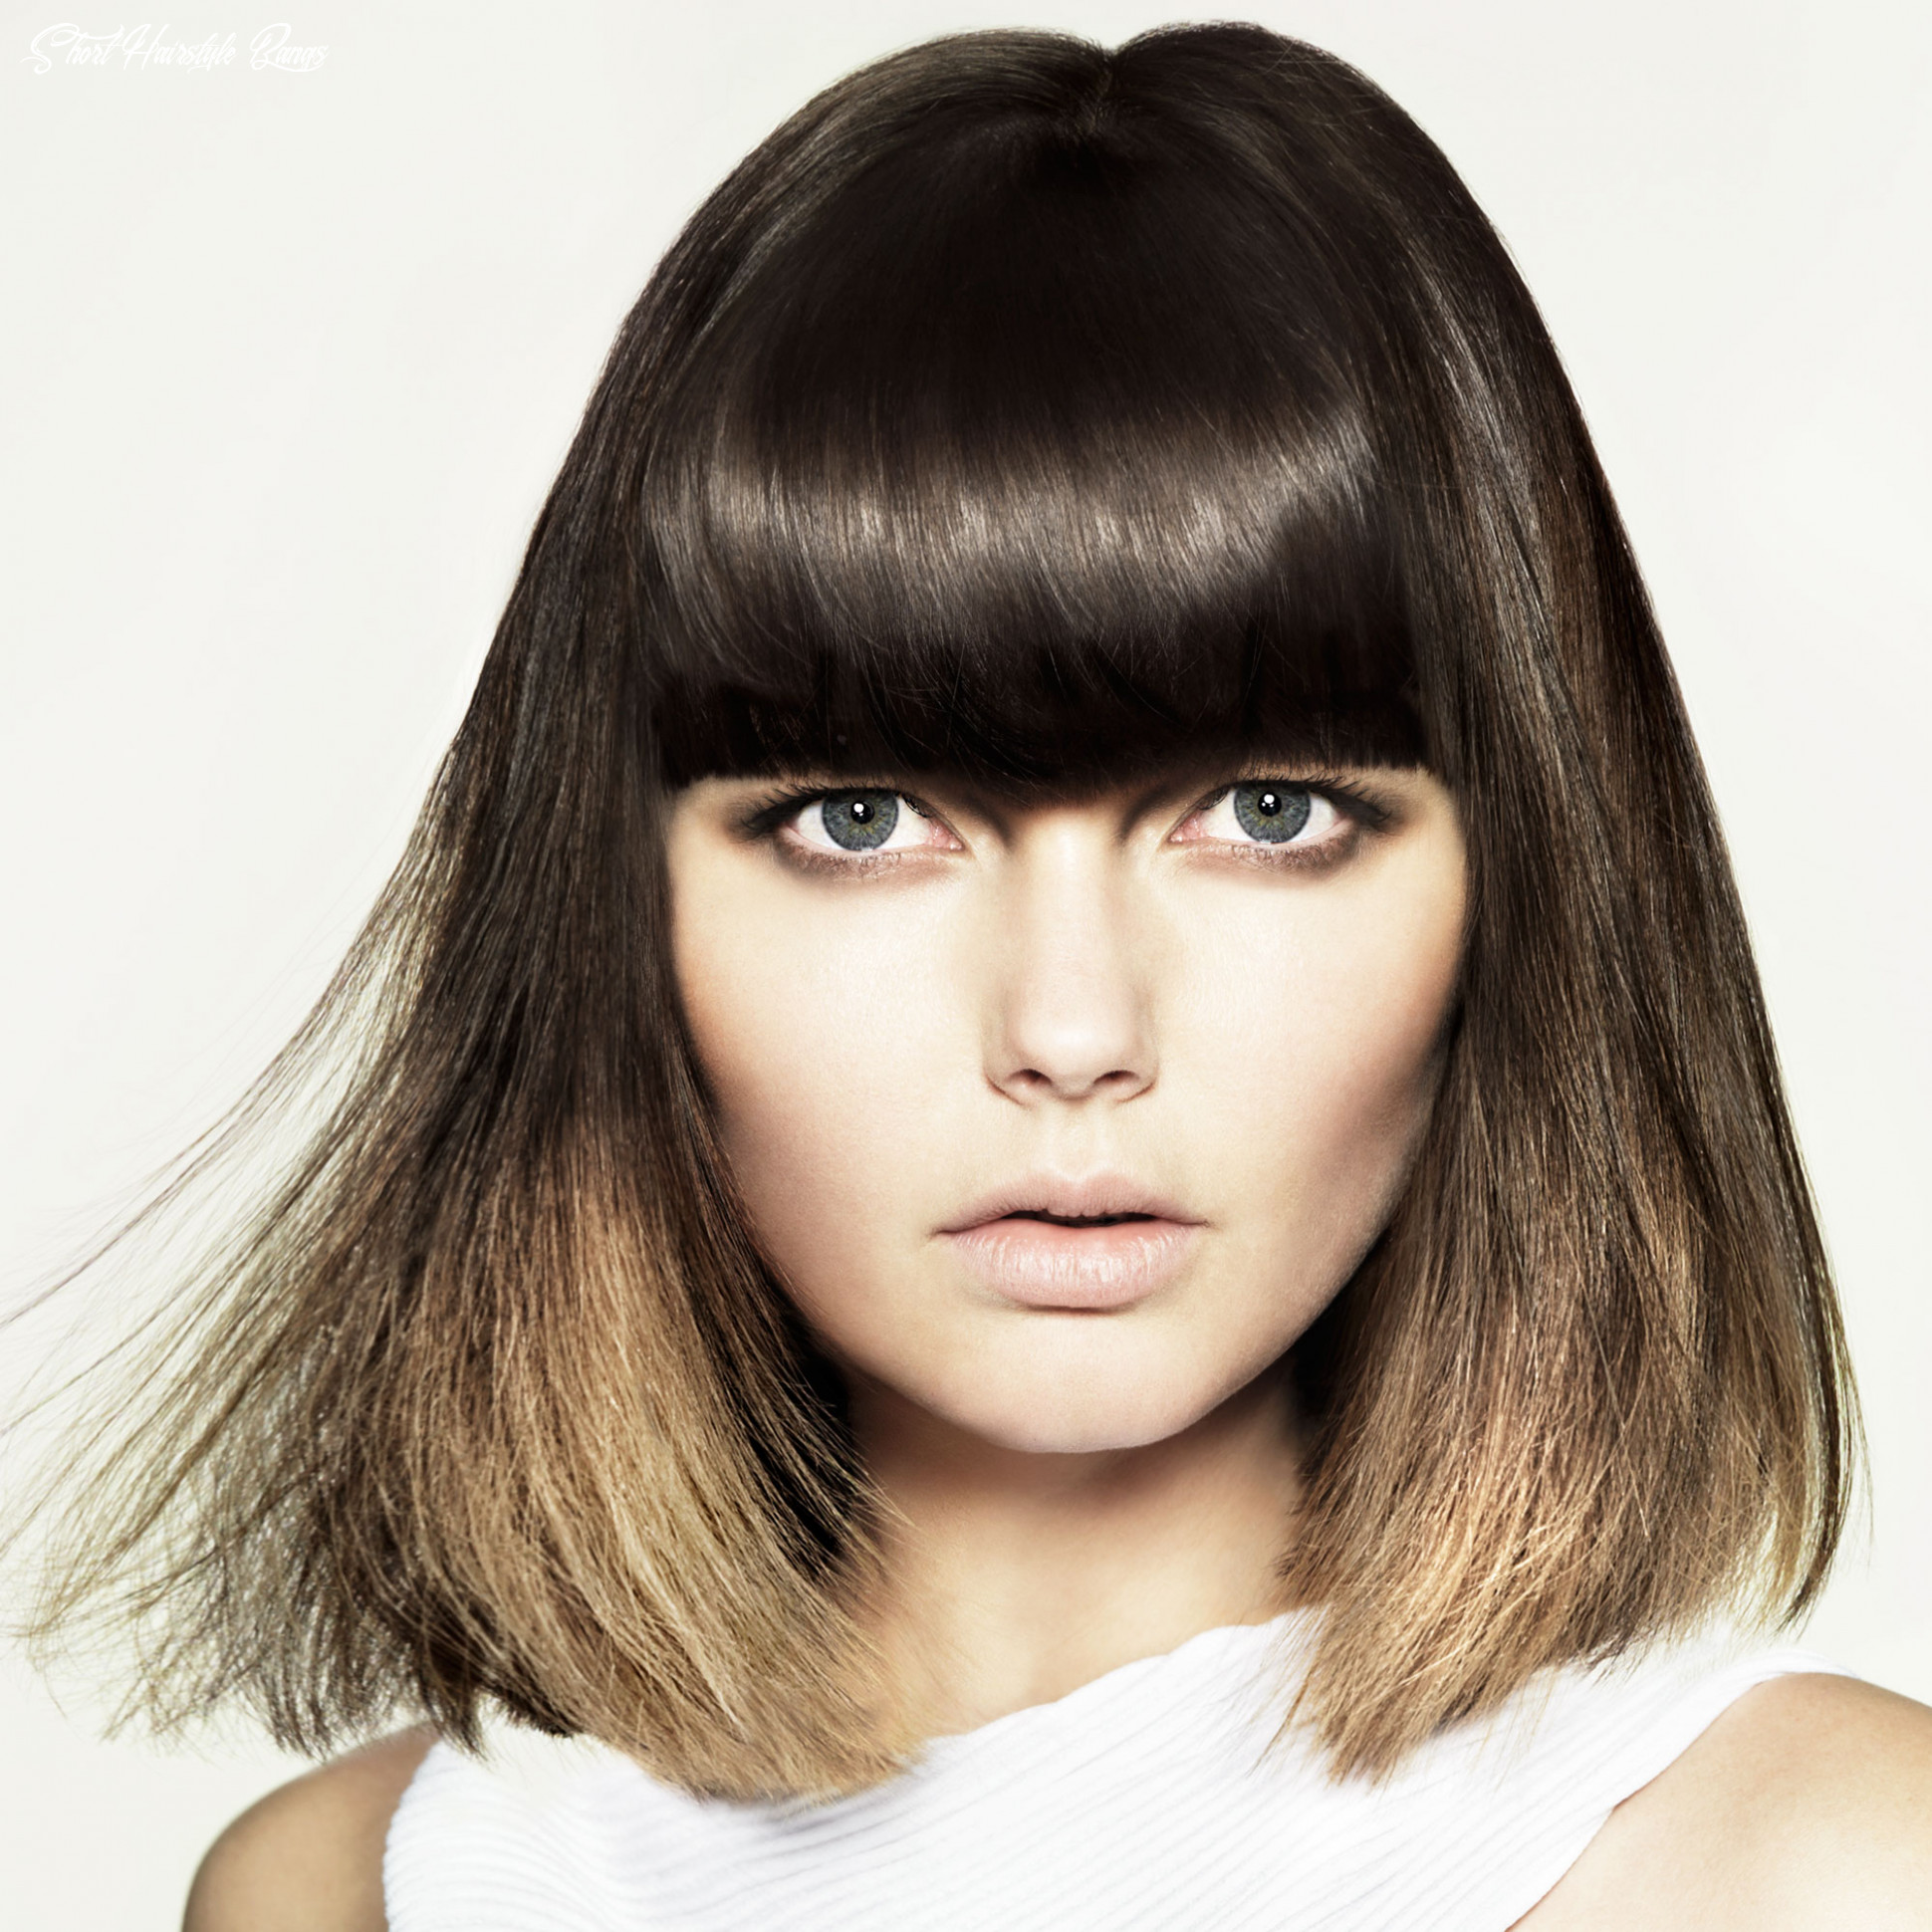 Short hairstyles | curly hairstyles | straight hairstyles | 11 women short hairstyle bangs